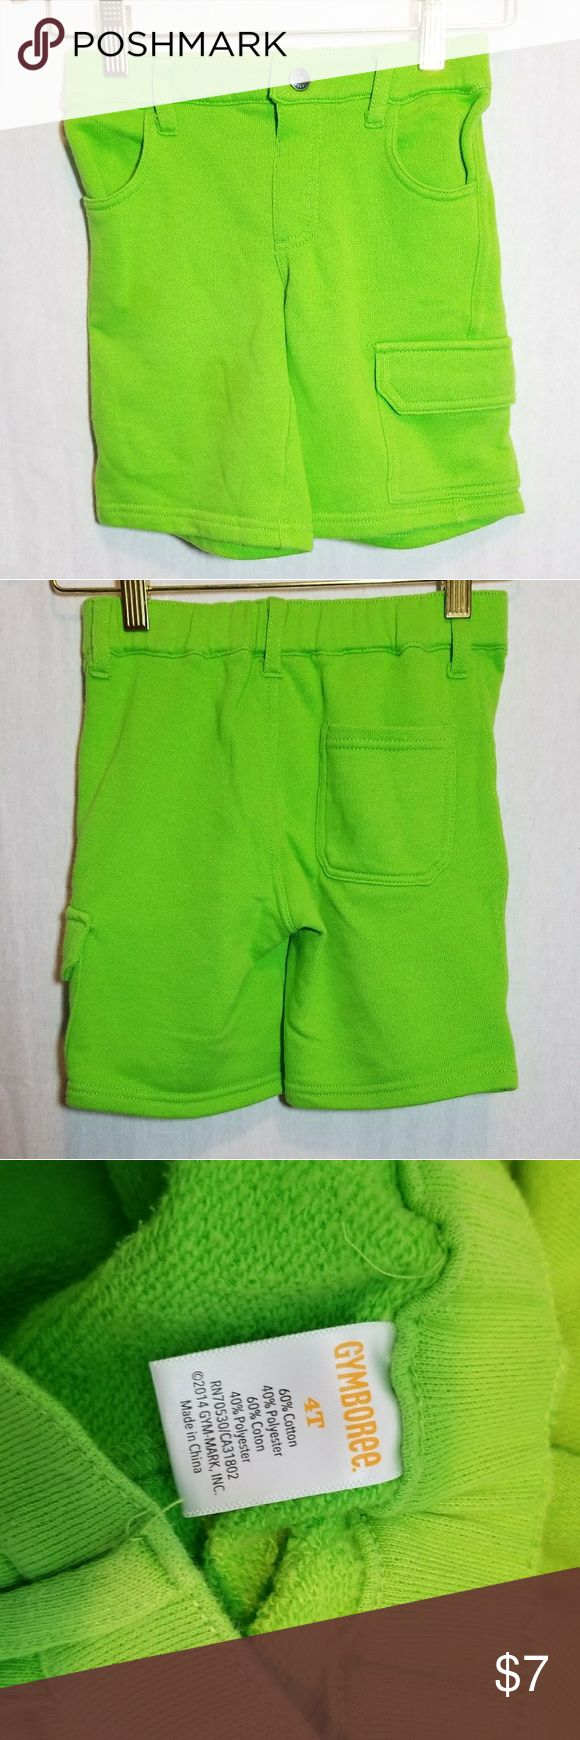 Gymboree Toddler Youth Lime Green Shorts 4T Unisex Boy or Girl Lime Green Shorts. Cotton Blend, Size 4T Gymboree Bottoms Shorts